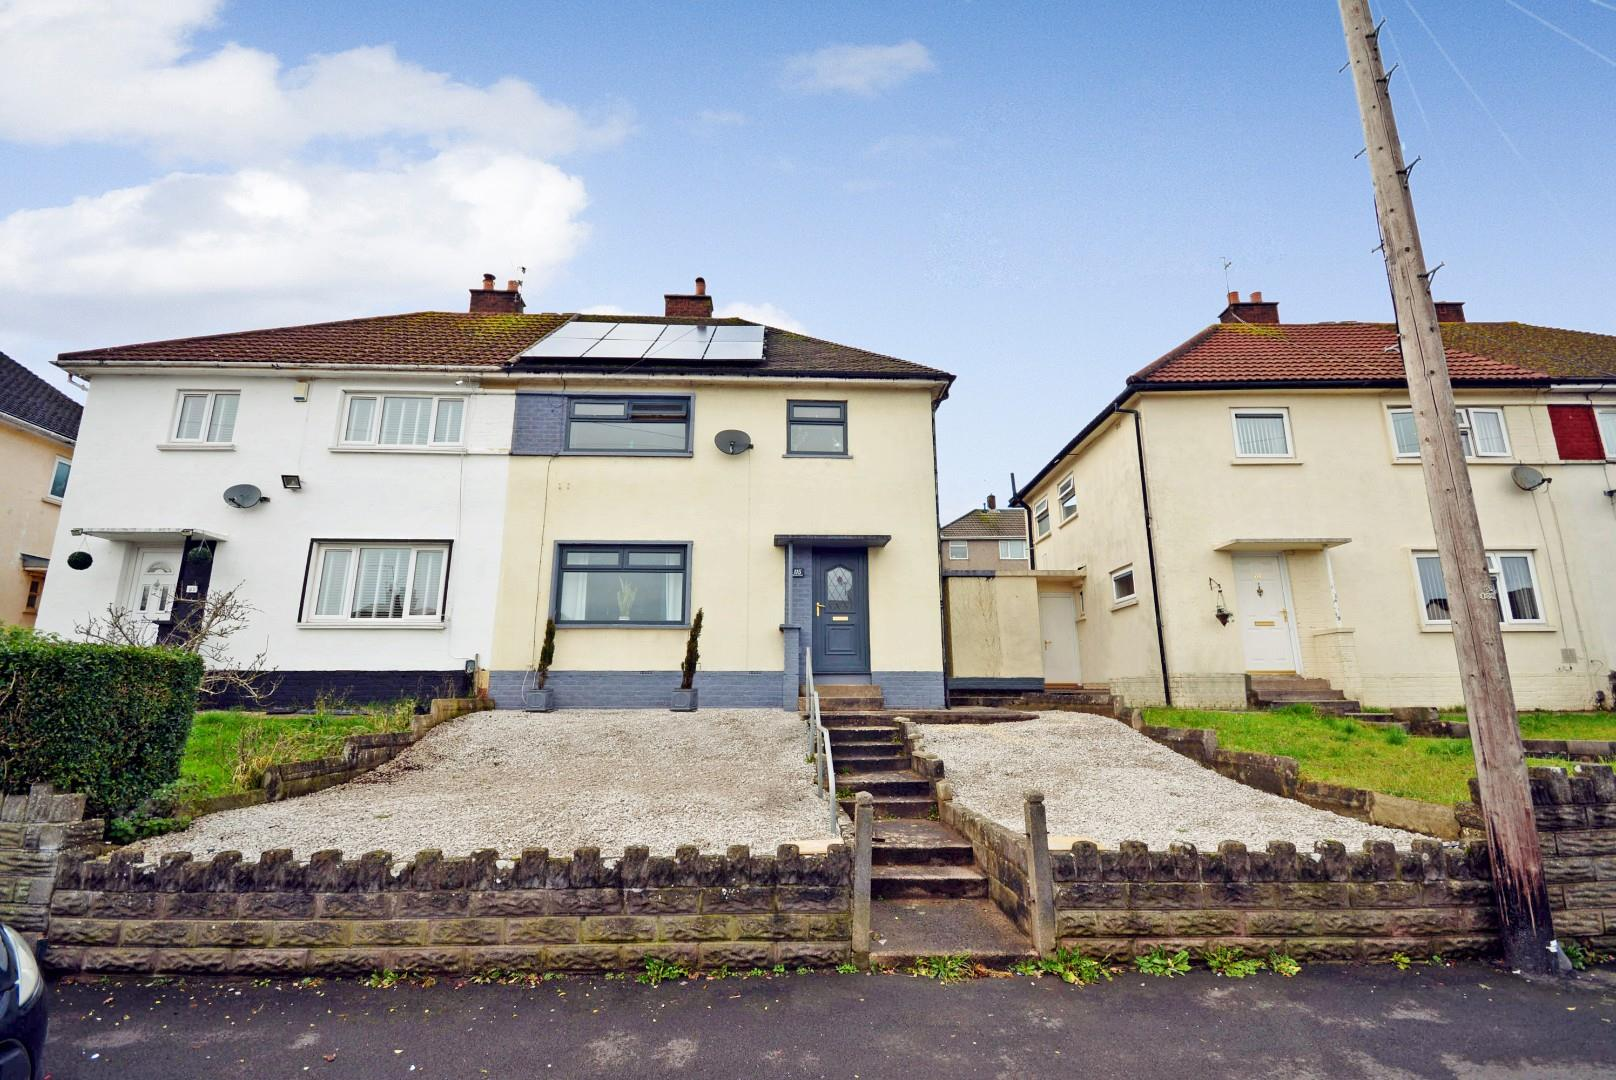 3 bed semi-detached house for sale in Llandudno Road, Cardiff - Property Image 1